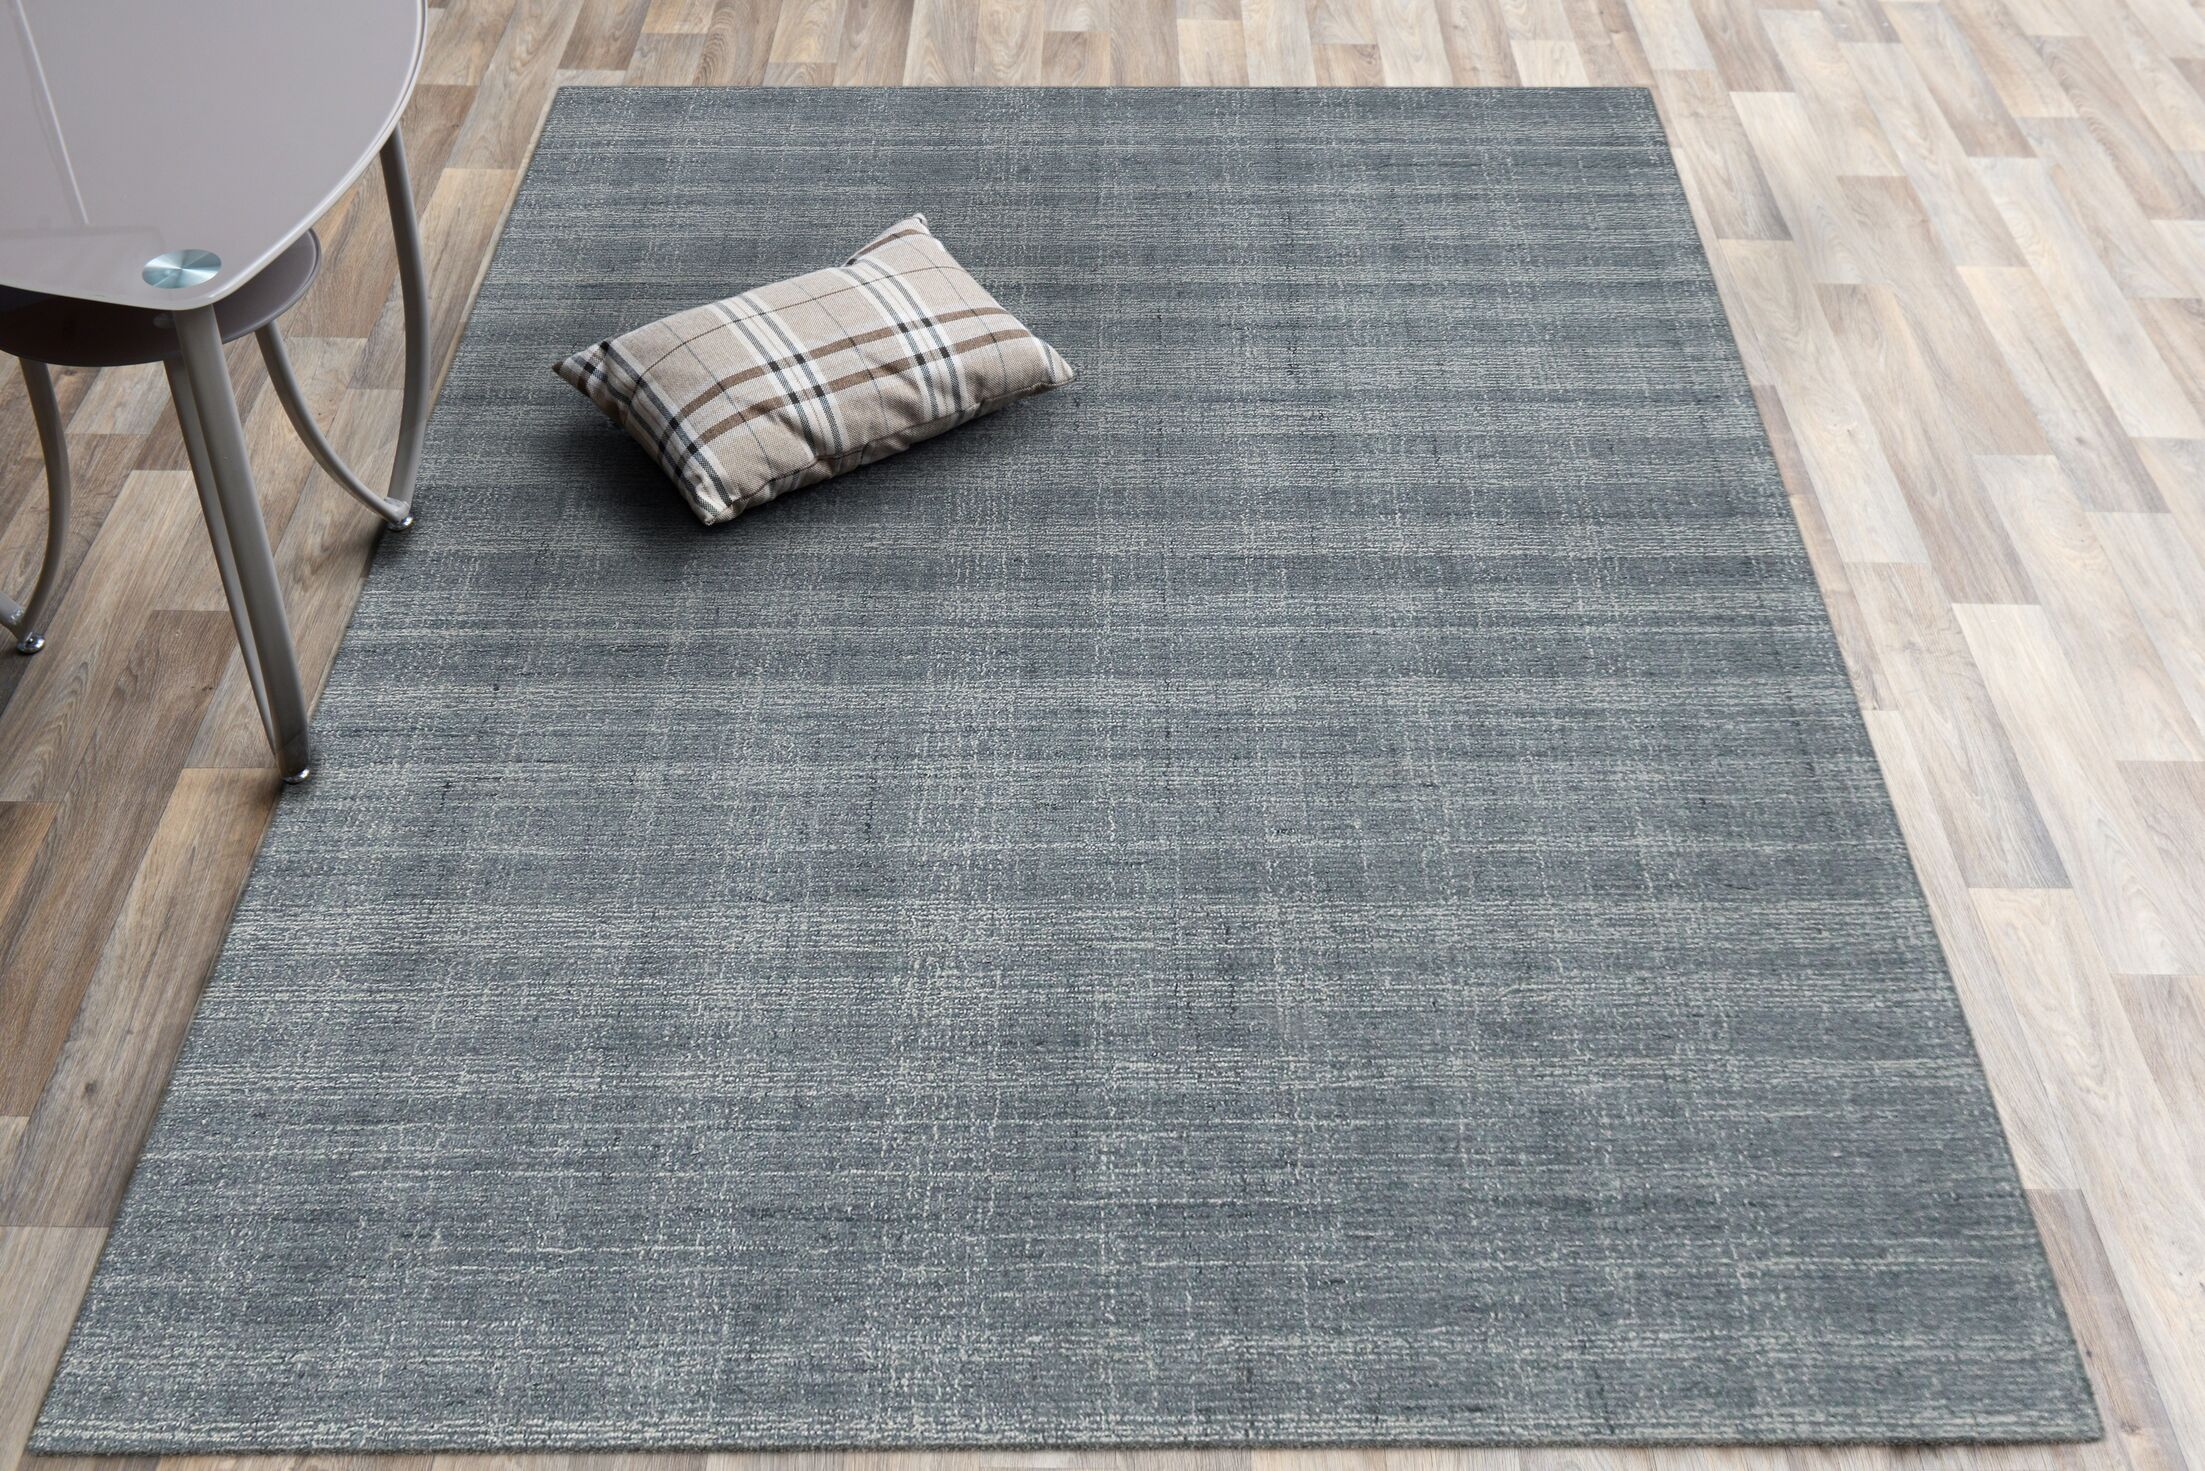 Mazzarella Hand-Tufted Wool Gray Area Rug Rug Size: Rectangle 8'1